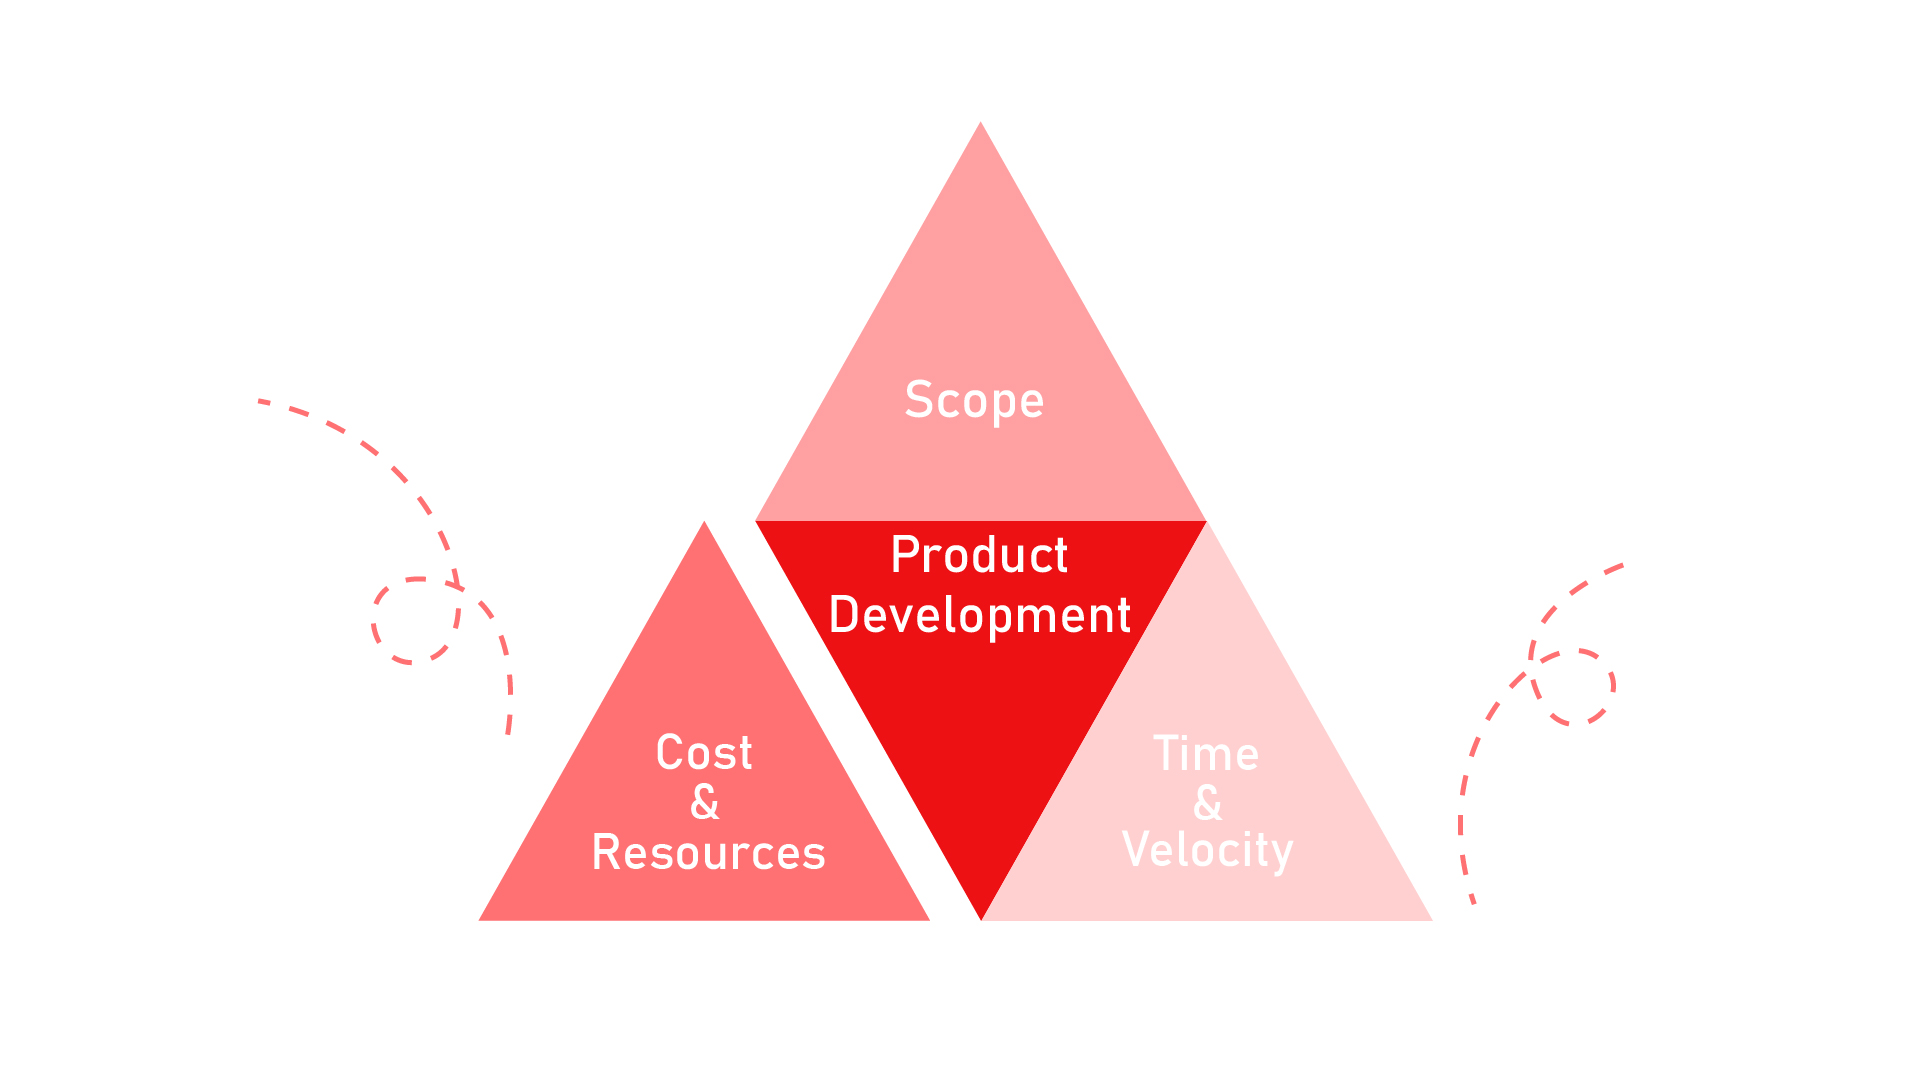 Project management triangle - Cost & Resources